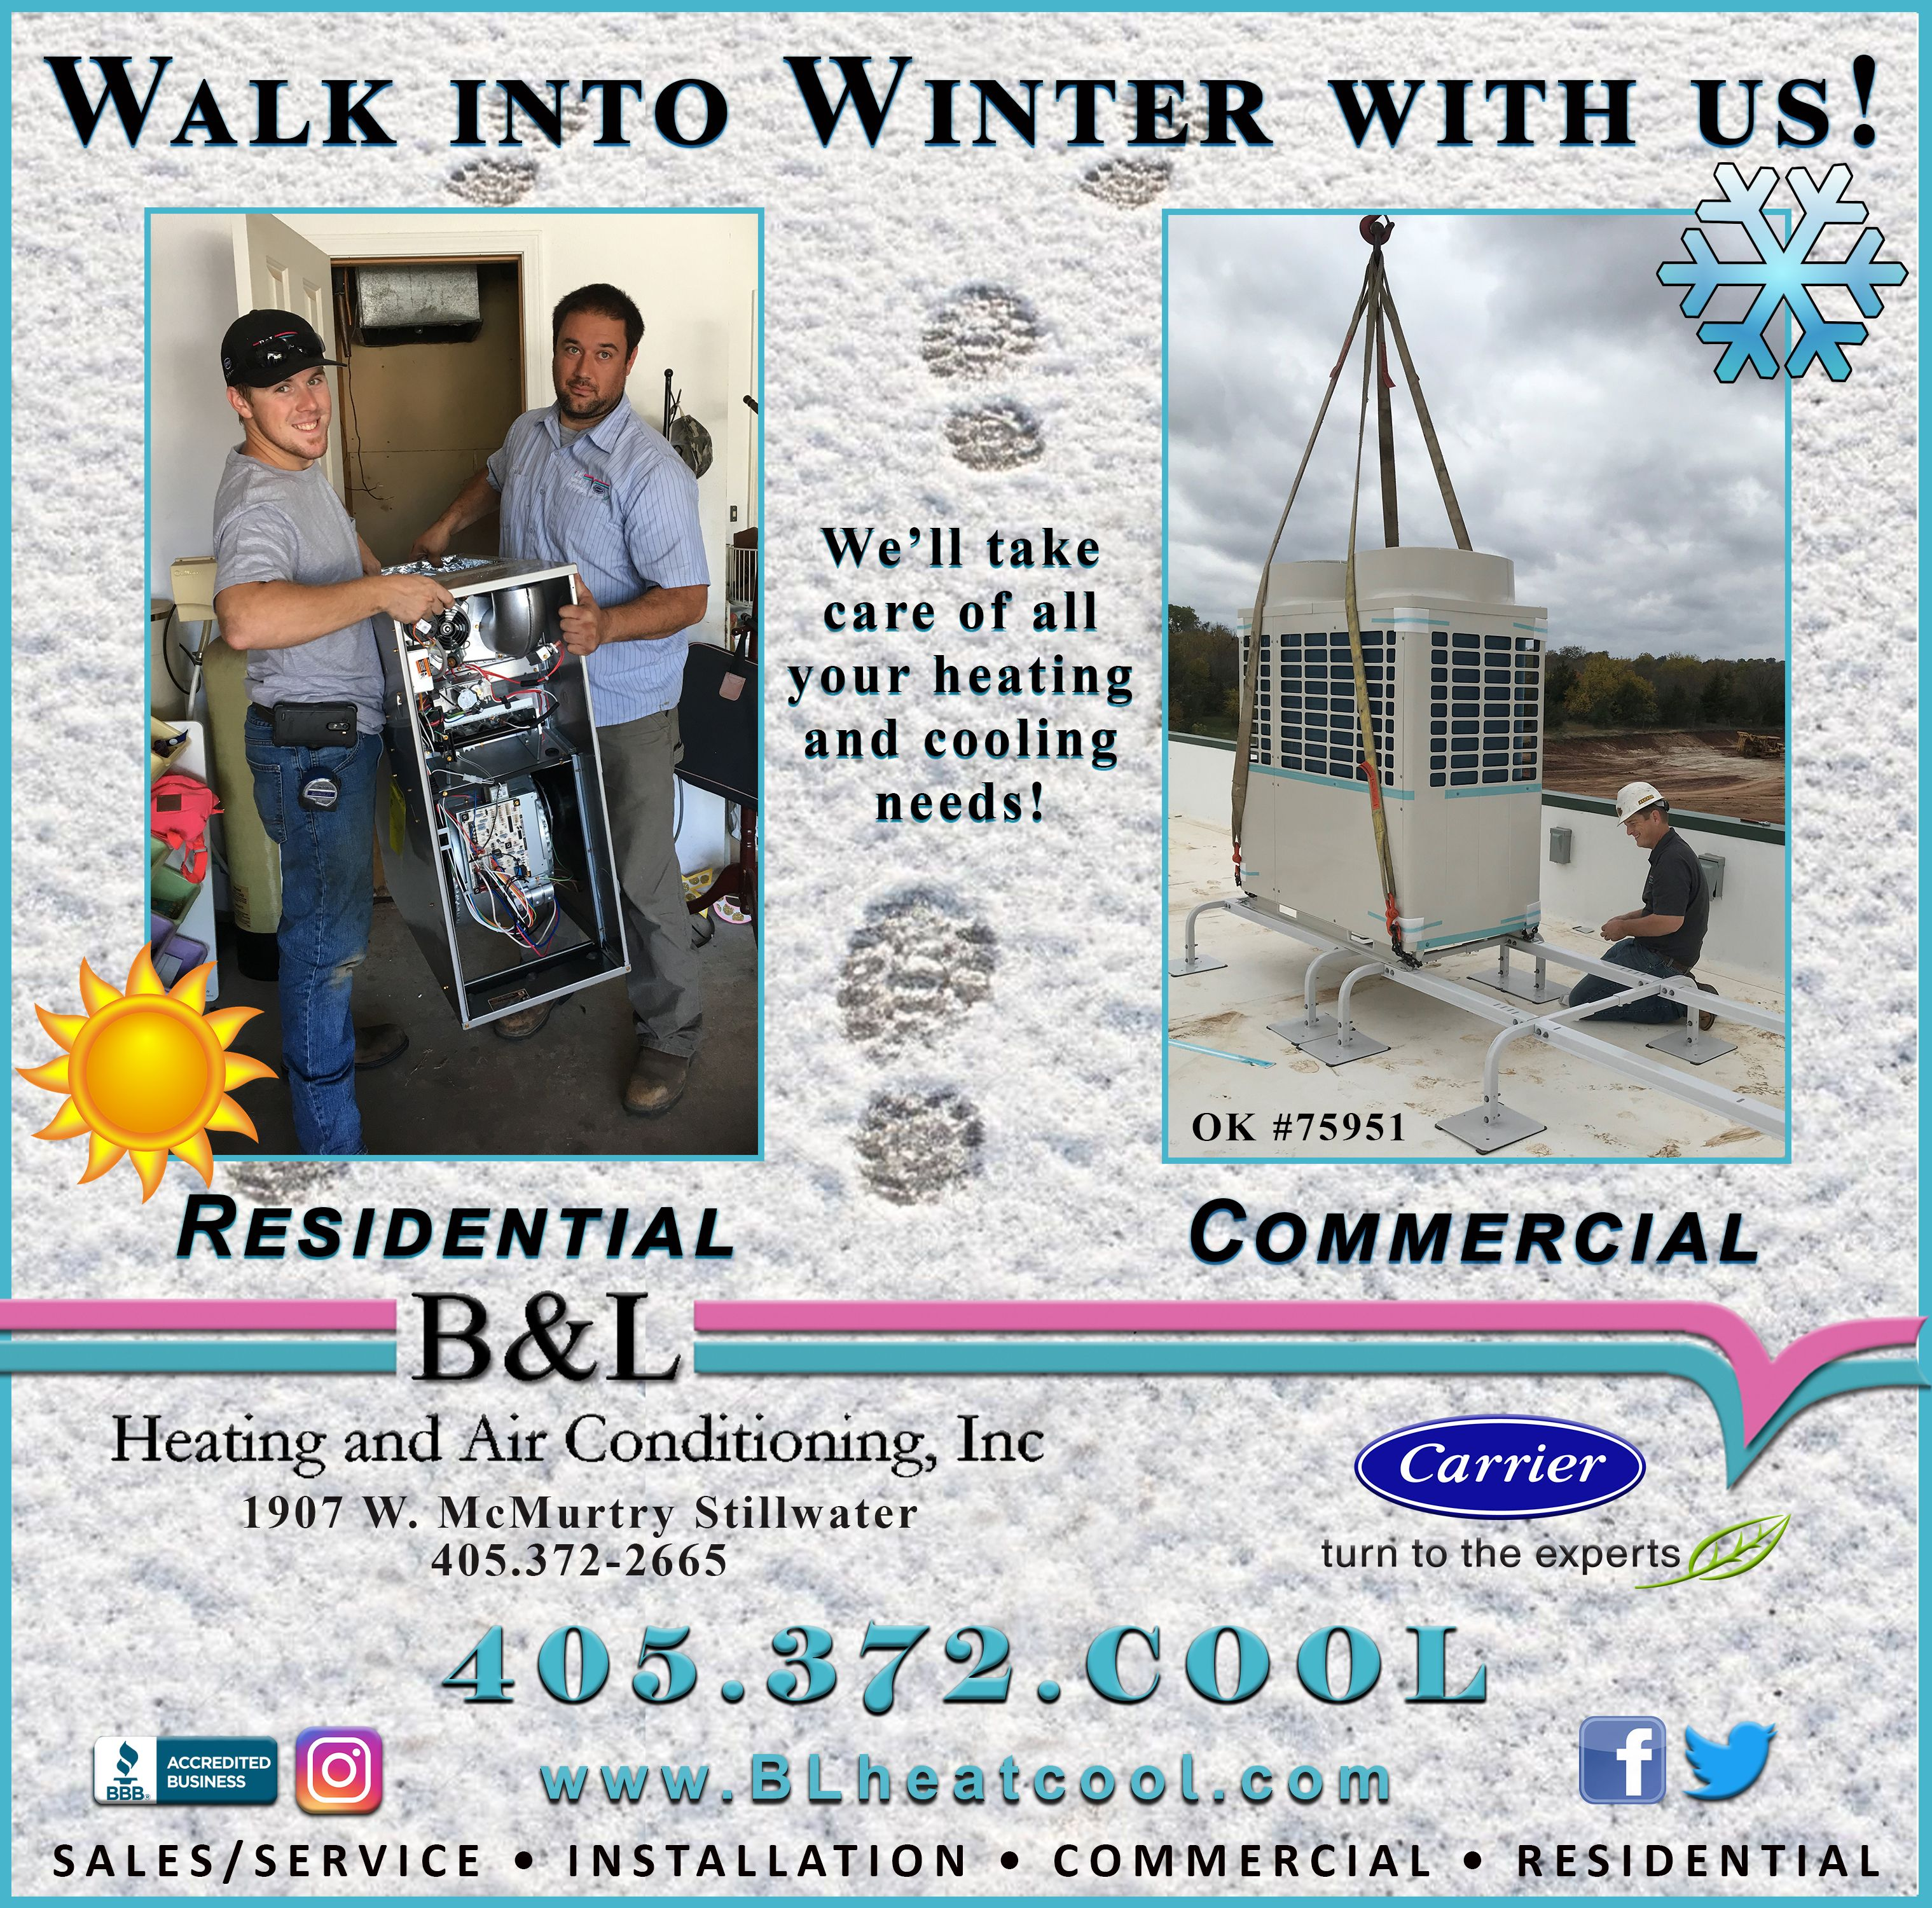 Pin By B L Heating And Air Conditioning Inc On B L Ads Heating